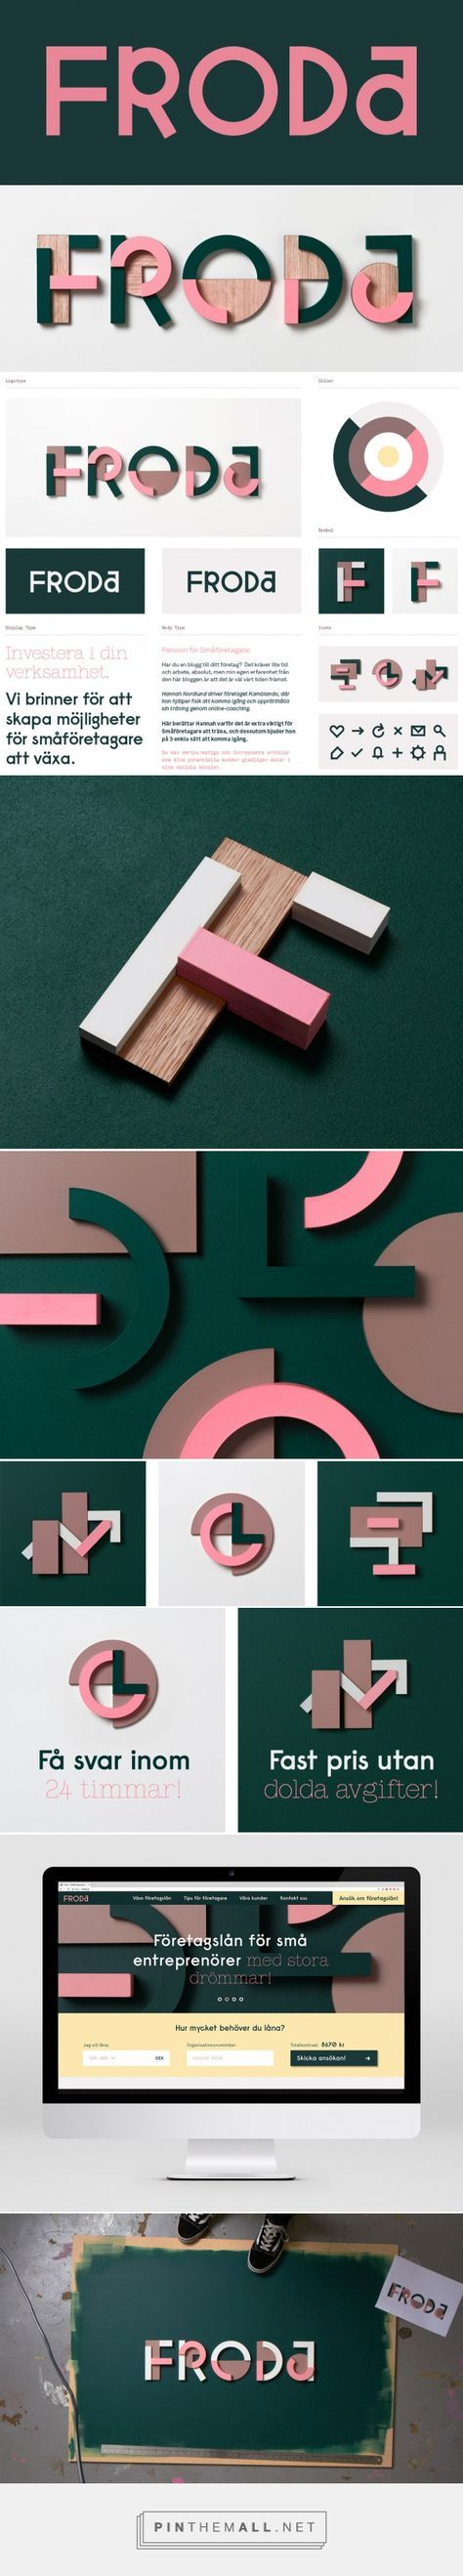 Brand New: New Name, Logo, and Identity for Froda by Snask...